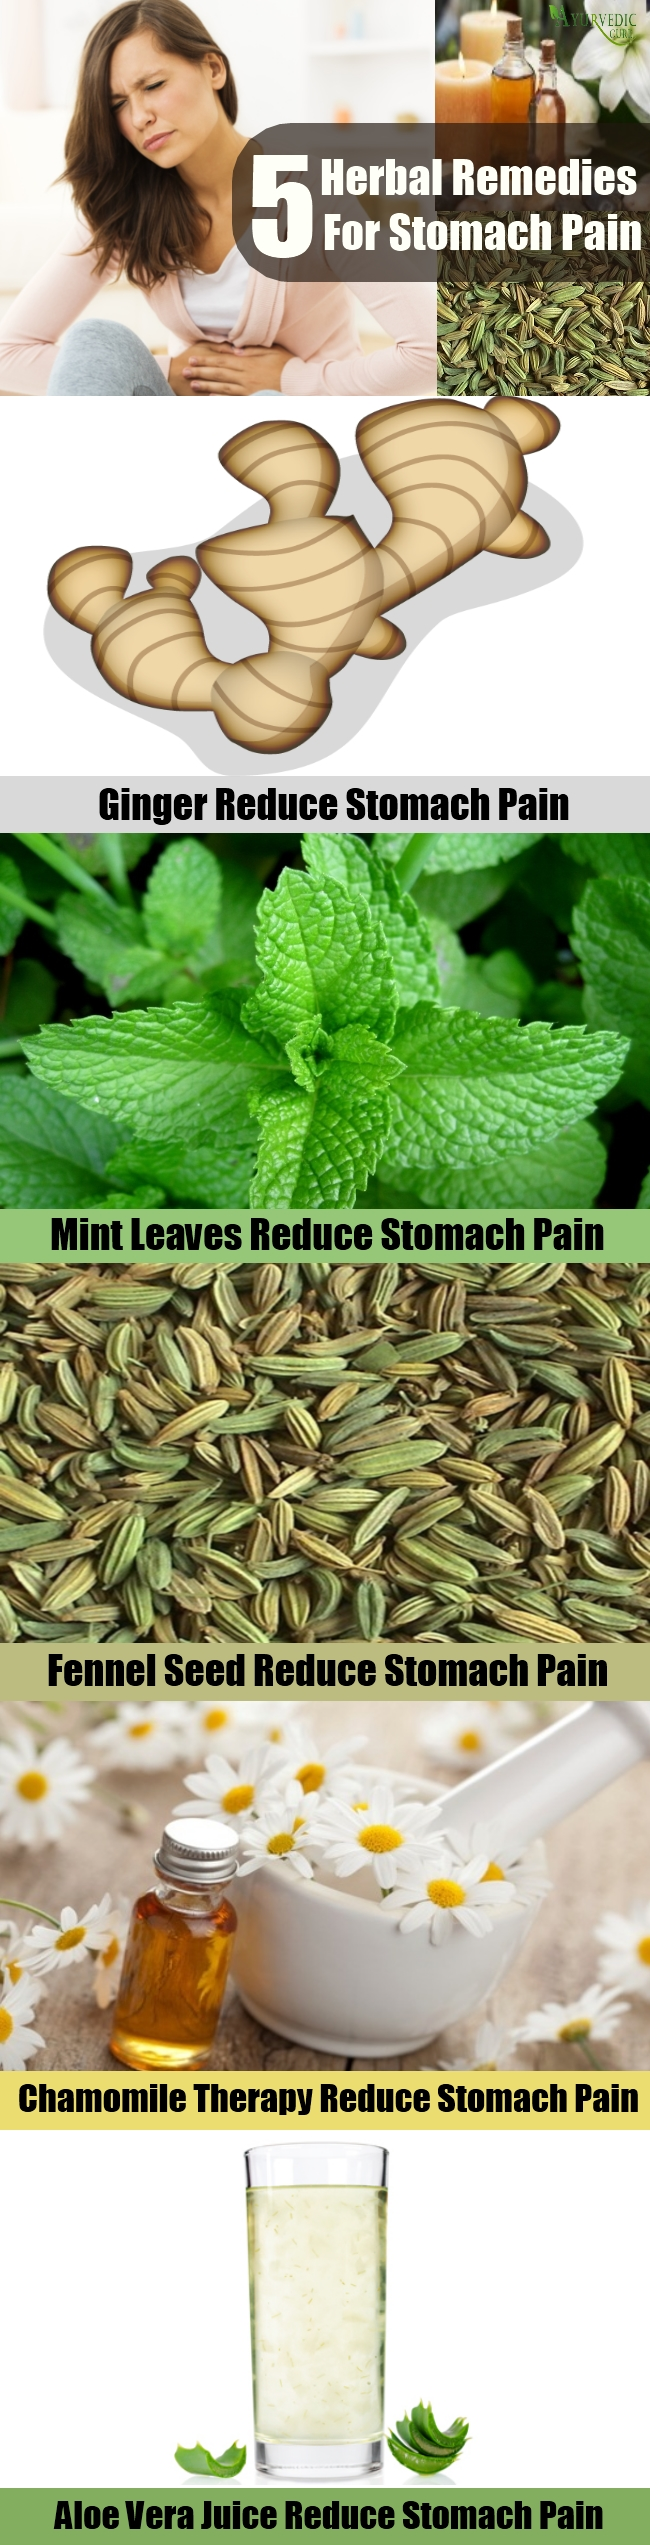 5 Effective Herbal Remedies For Stomach Pain